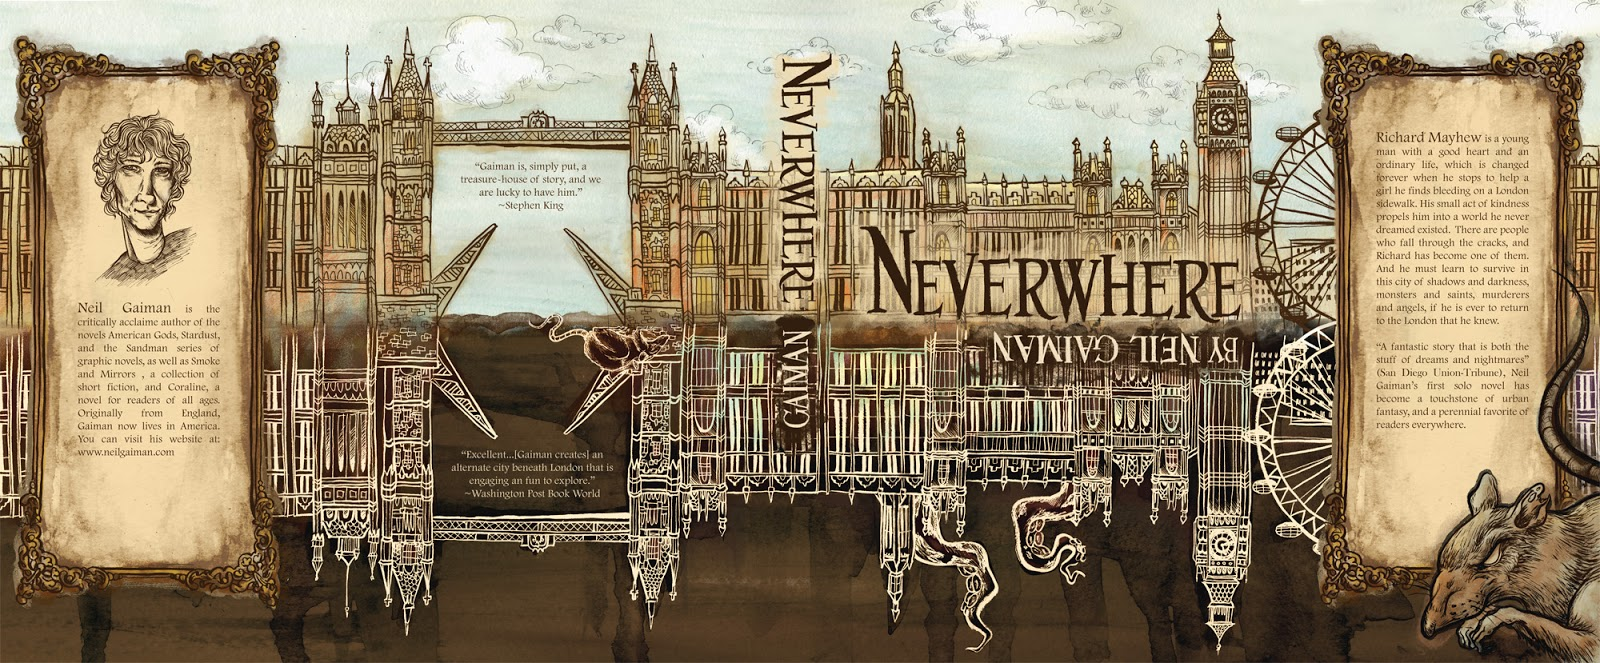 neverwhere book analysis Buy good omens by neil gaiman, terry pratchett (isbn: 9780552171892) from amazon's book store everyday low prices and free delivery on eligible orders.